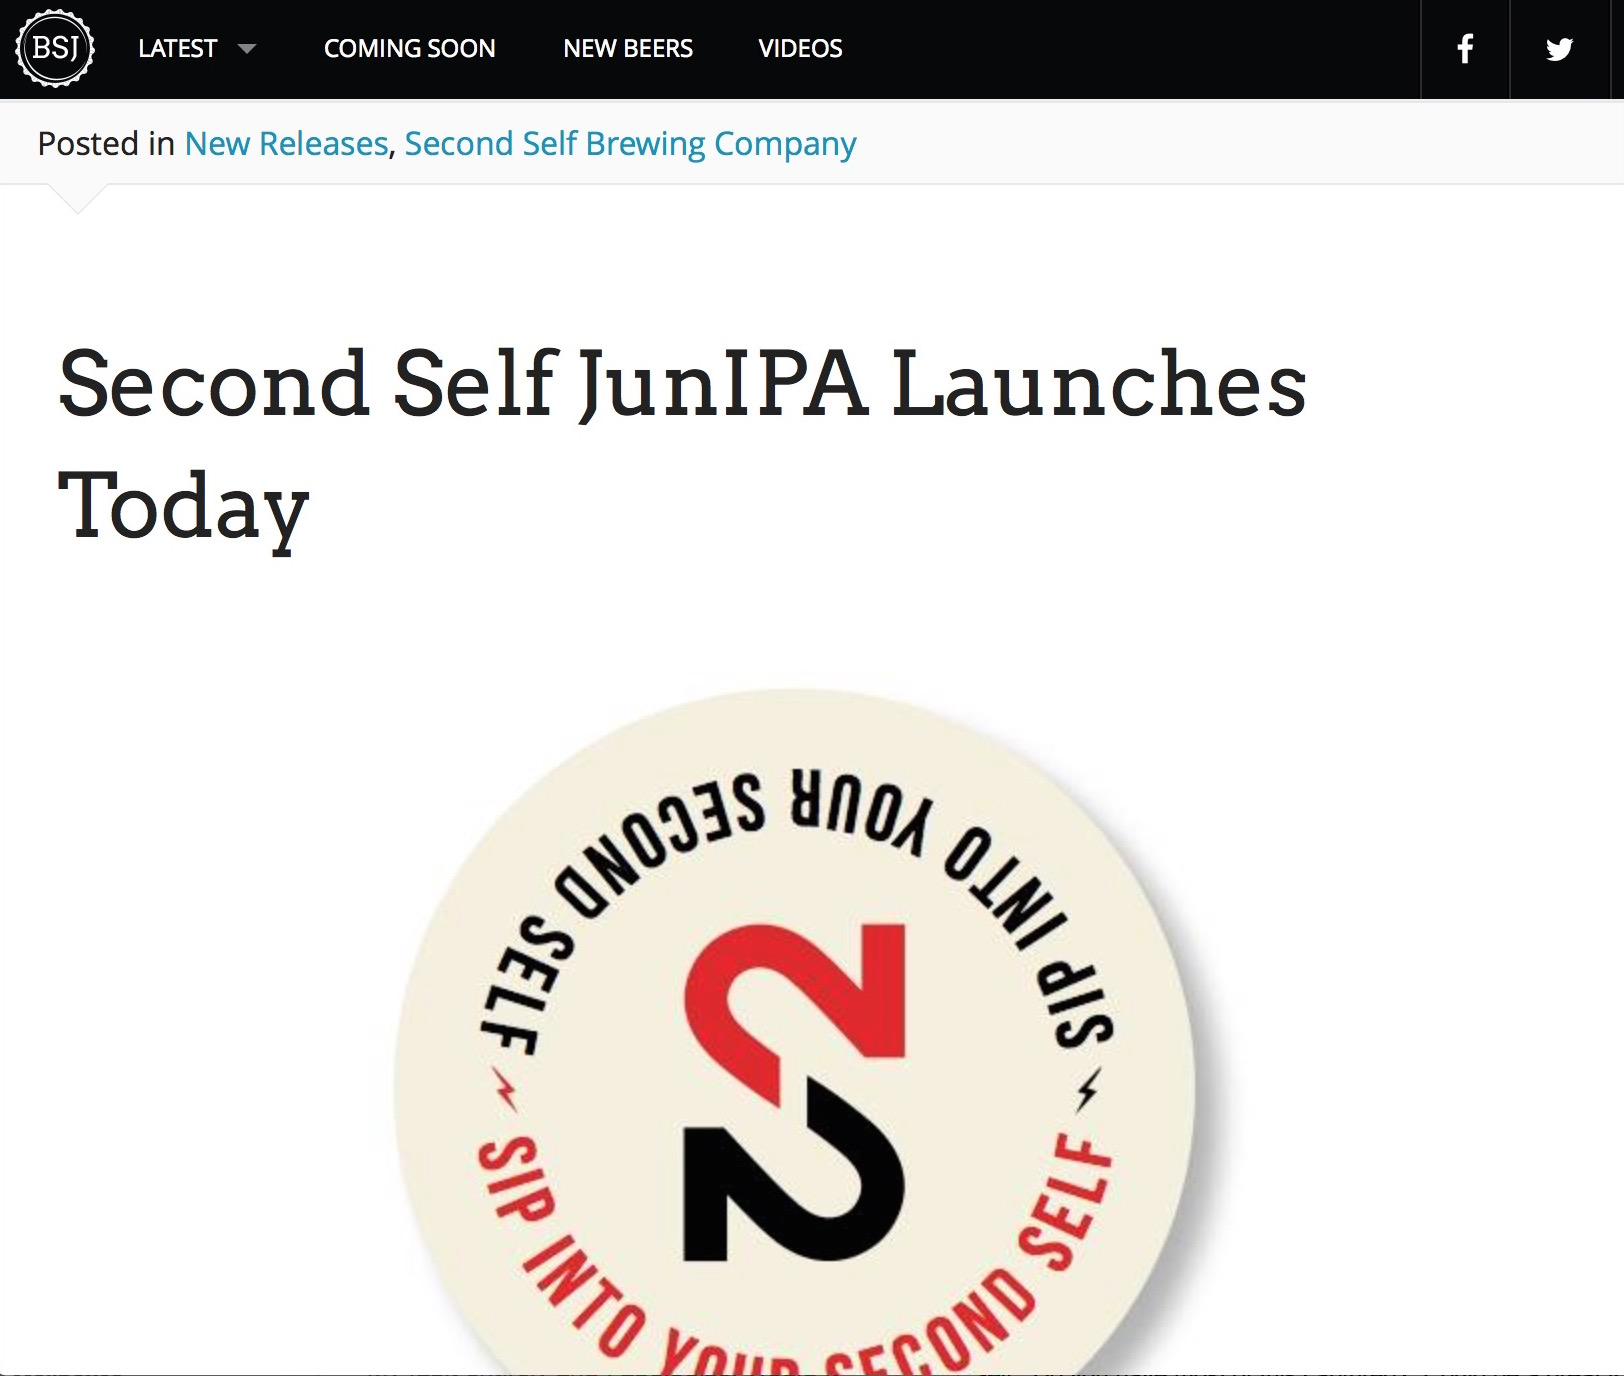 BeerStreetJournal,  Second Self Launches JunIPA , January 20th, 2015